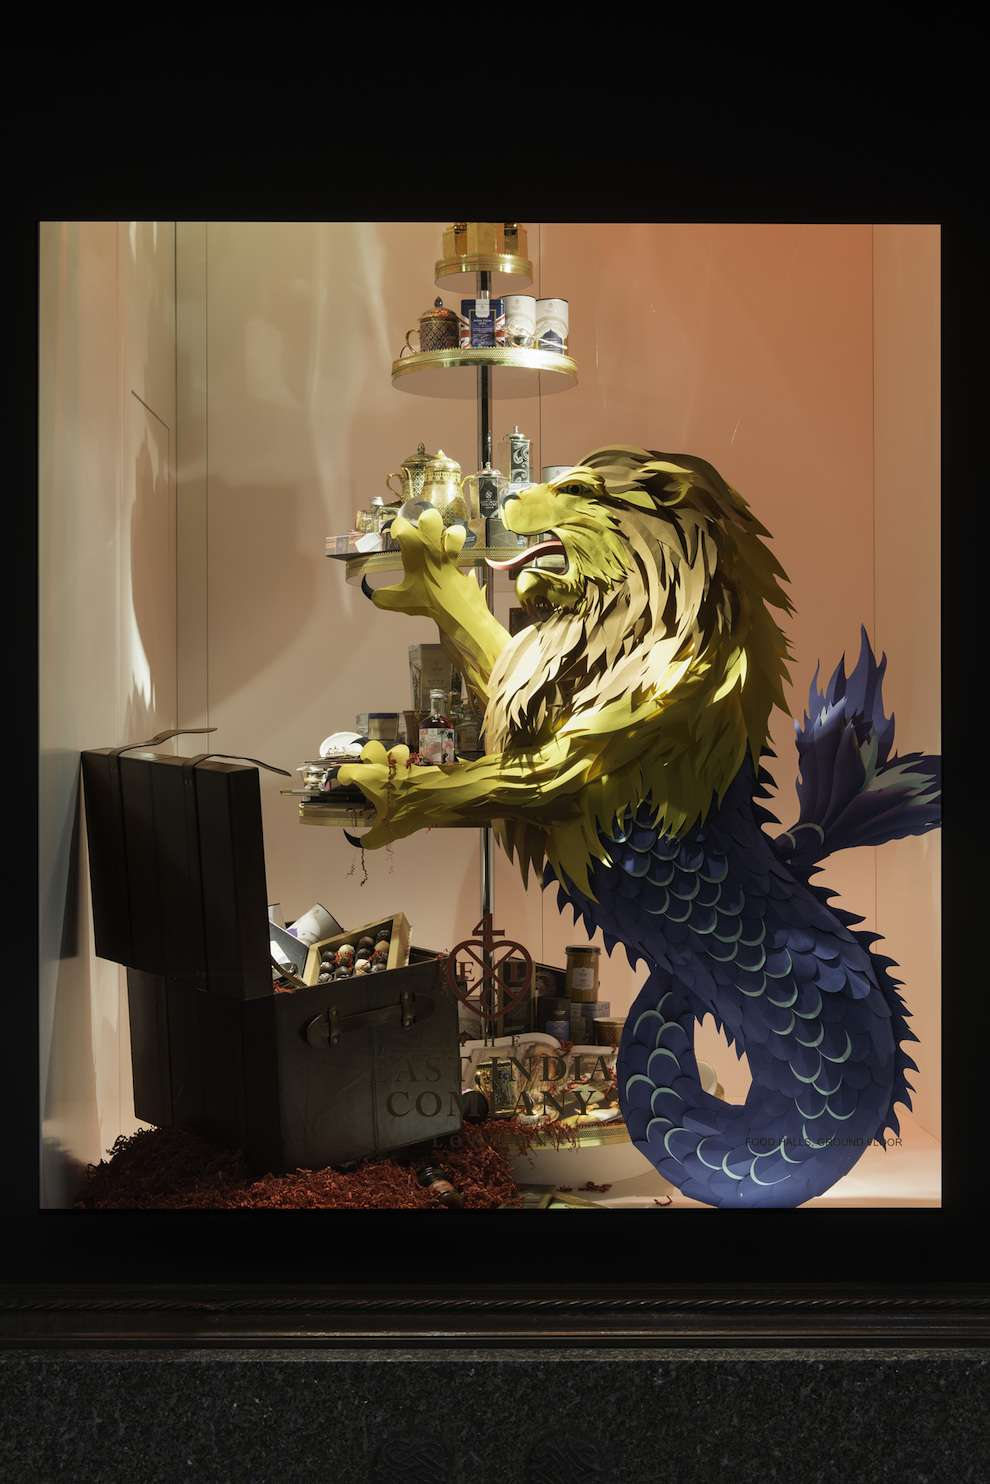 Andy Singleton, Fantastic paper sculpture of a beast with a lion head and a mermaid tail for a window display